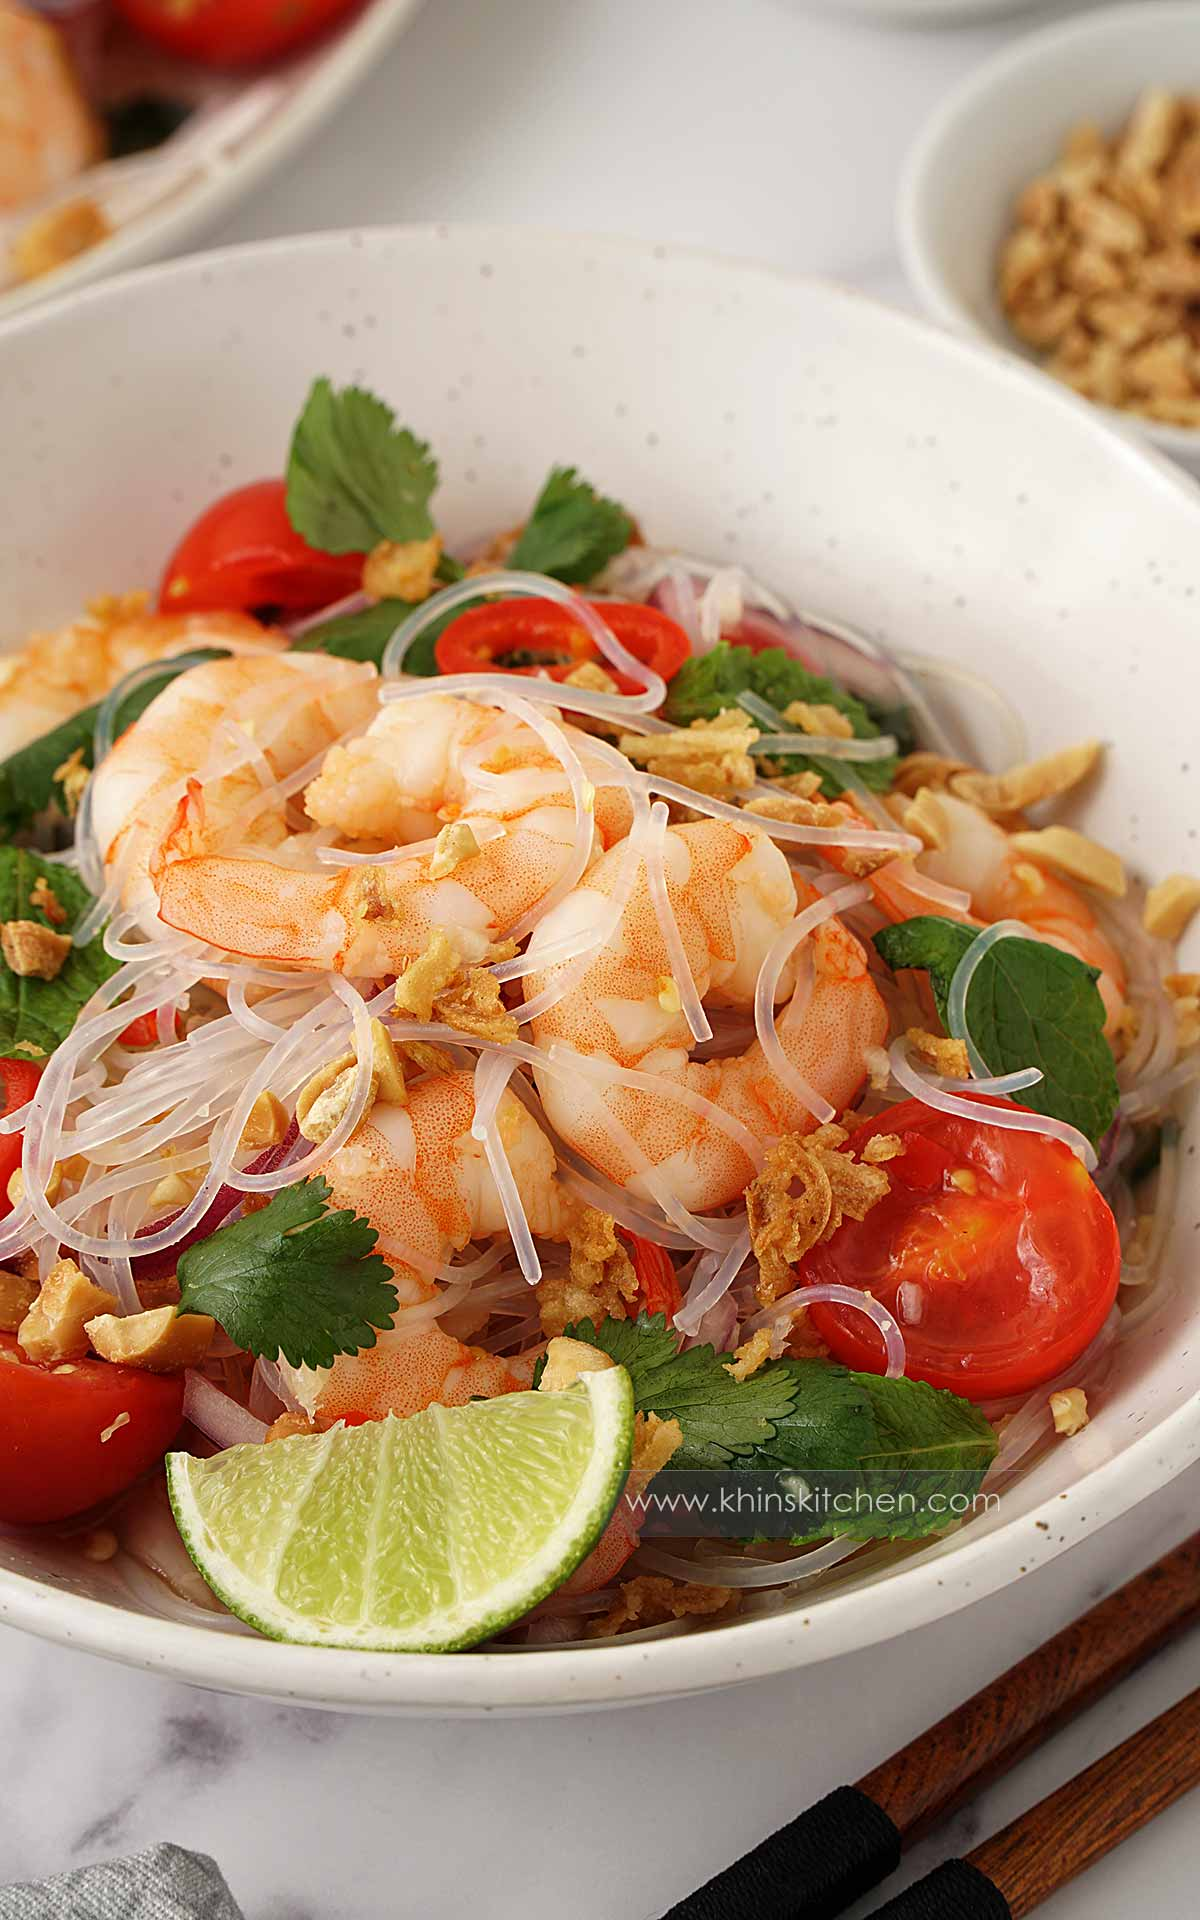 A white bowl containing prawns and glass noodle salad with cherry tomatoes and one lime wedge on the side.